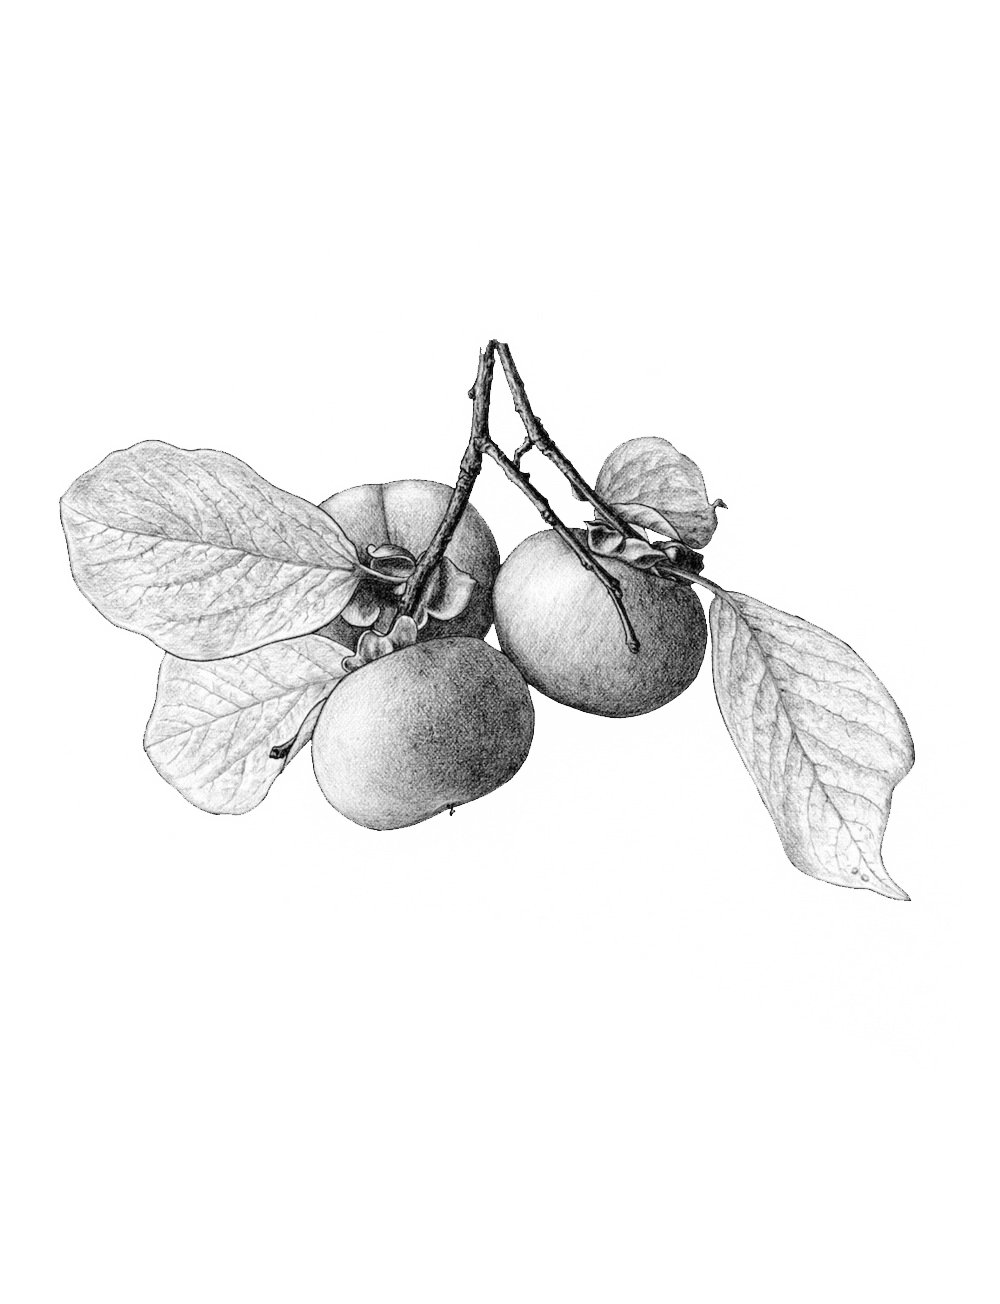 ss.persimmons.png